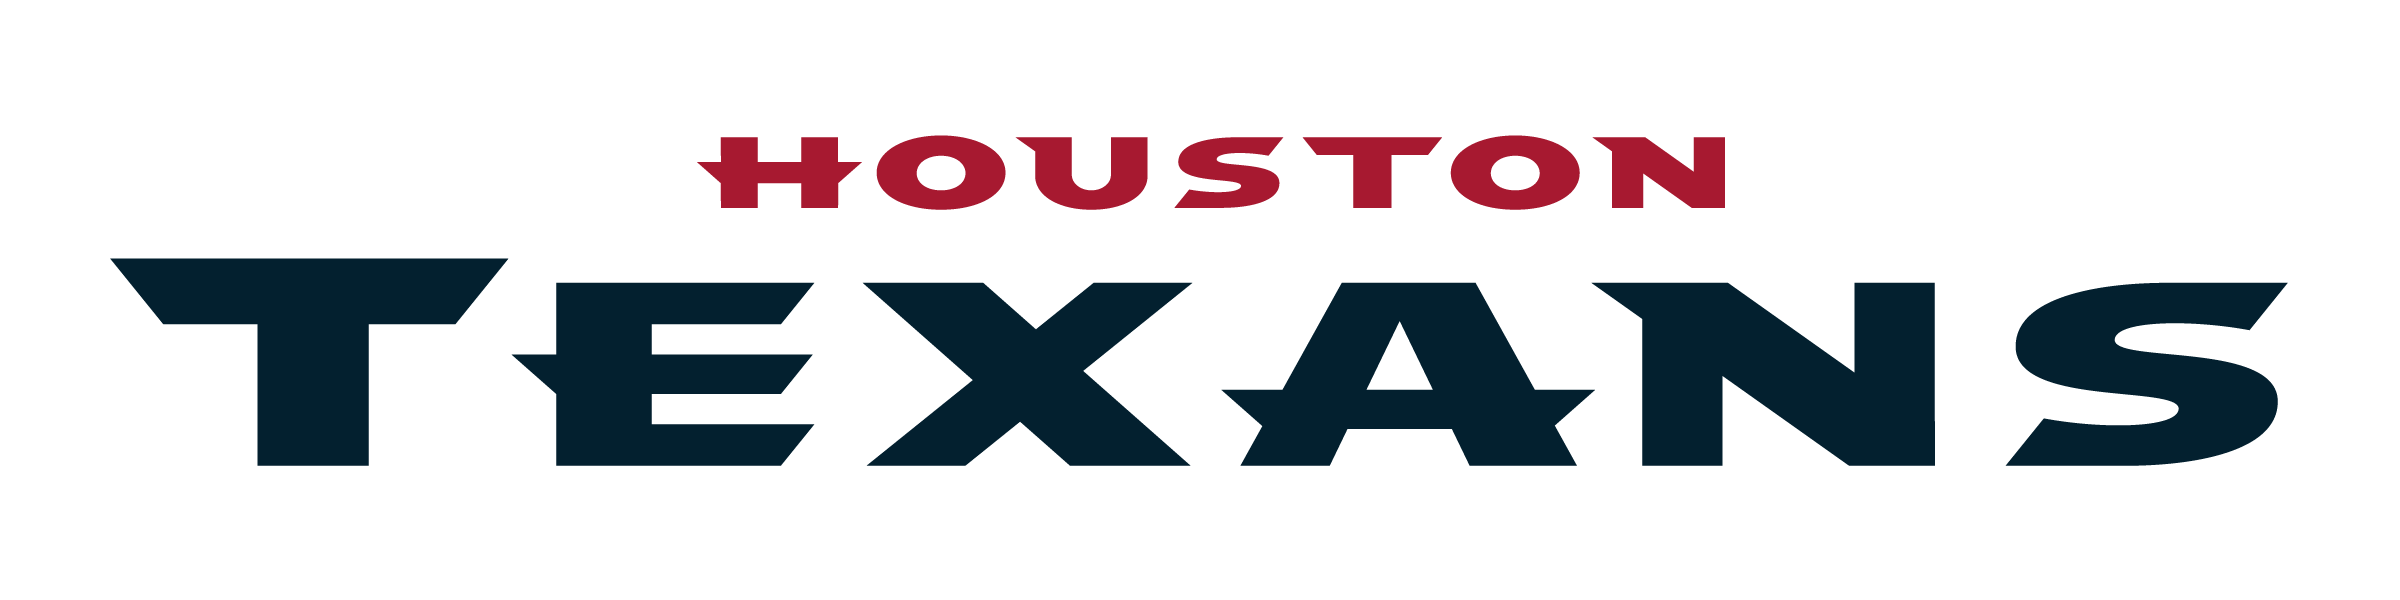 houston texans logo png transparent svg vector freebie supply rh freebiesupply com